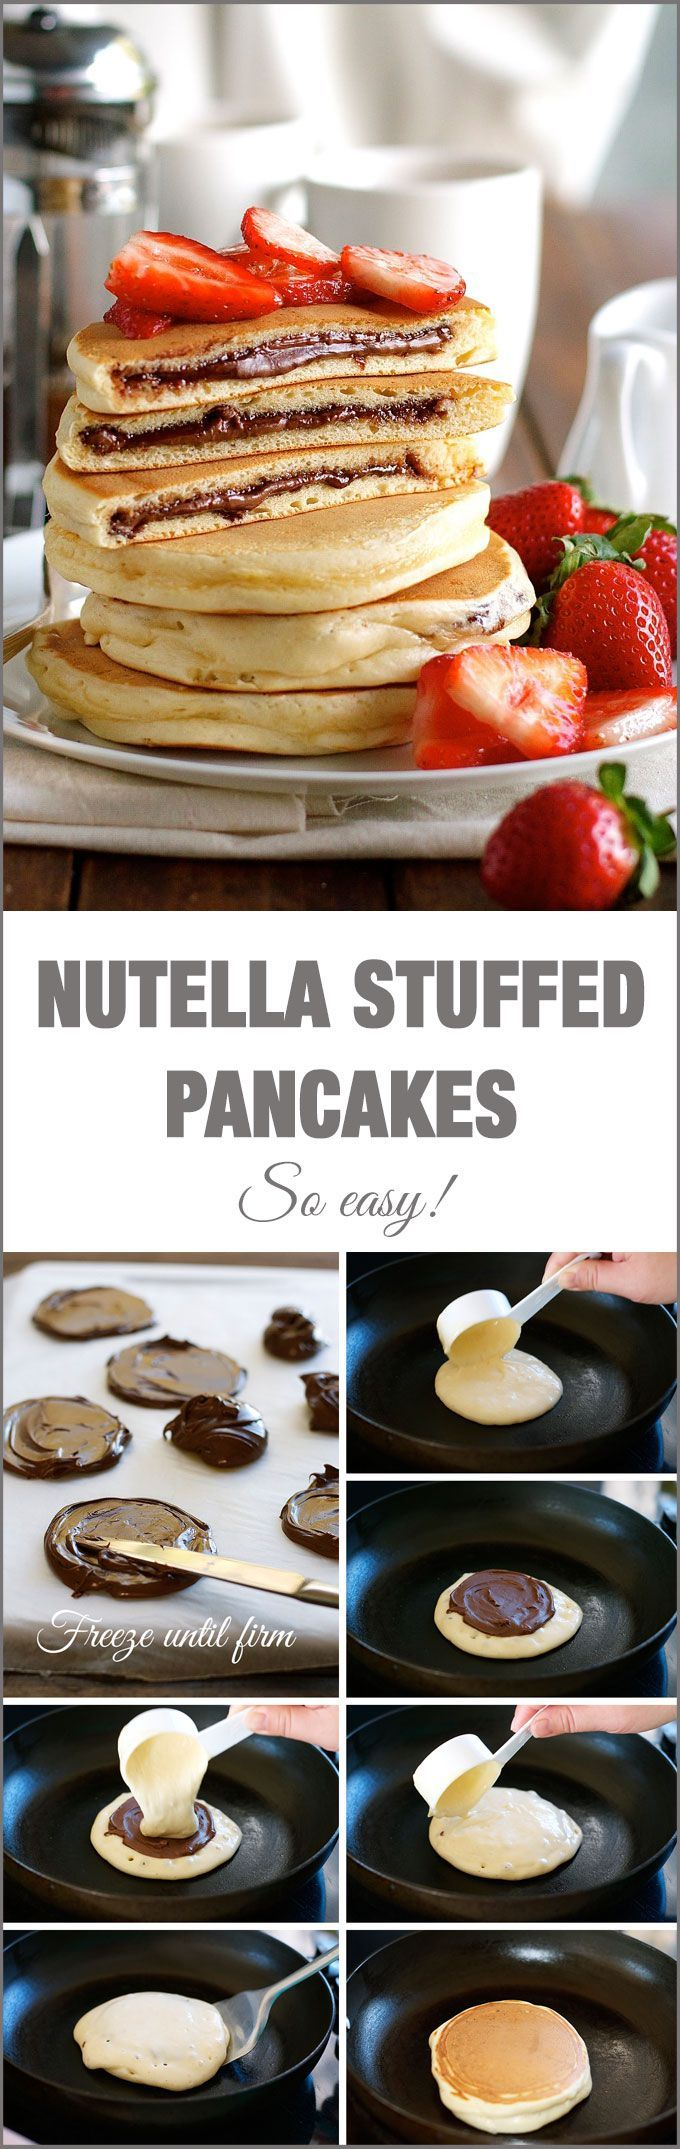 Nutella Stuffed Pancakes - So easy recipe to prepare, but very delicious!